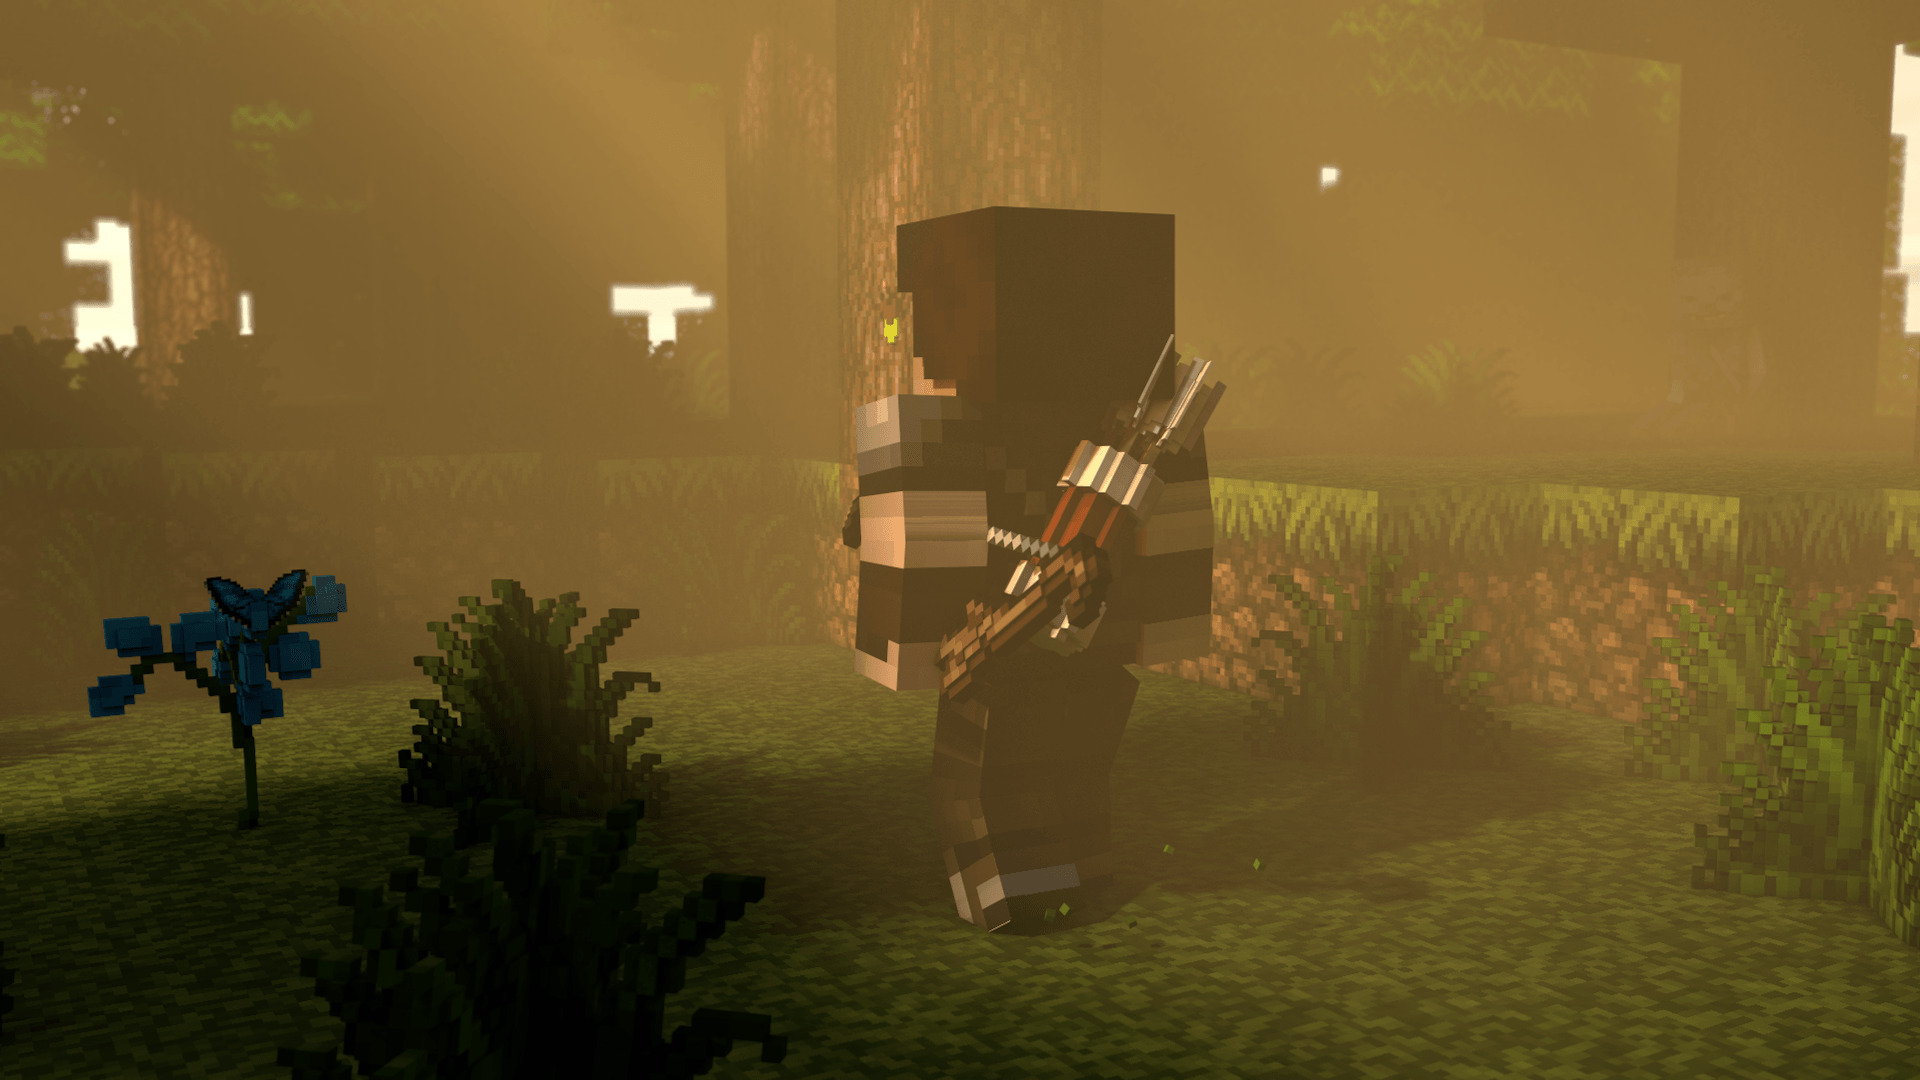 wallpaper_minecraft_3d___the_archer_by_thefennixcreations-d7y0wqh